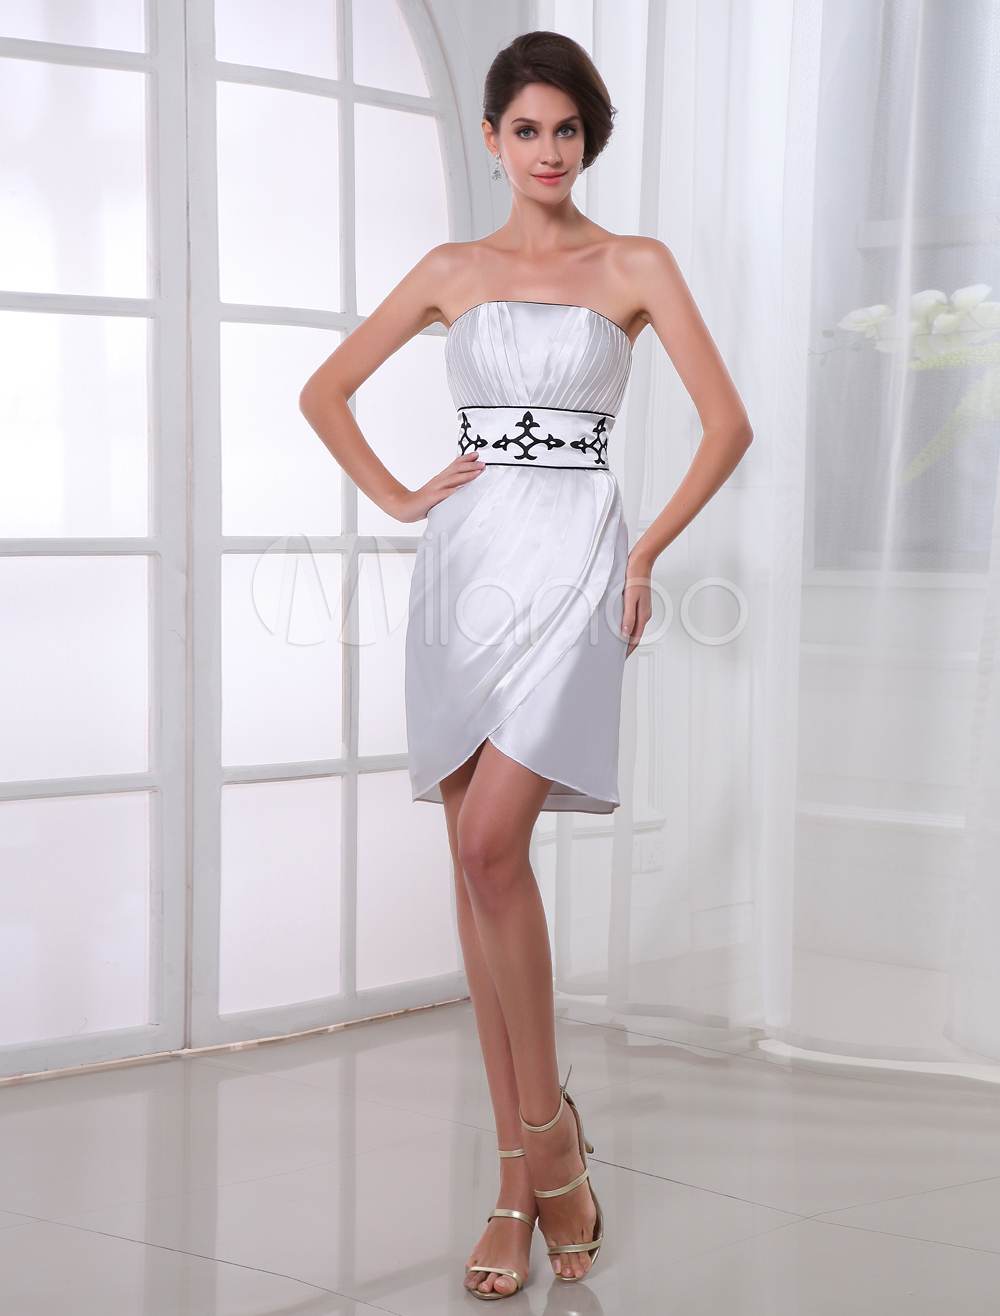 Sheath White Ruched Strapless Knee-Length Fashion Cocktail Dress (Wedding Cheap Party Dress) photo